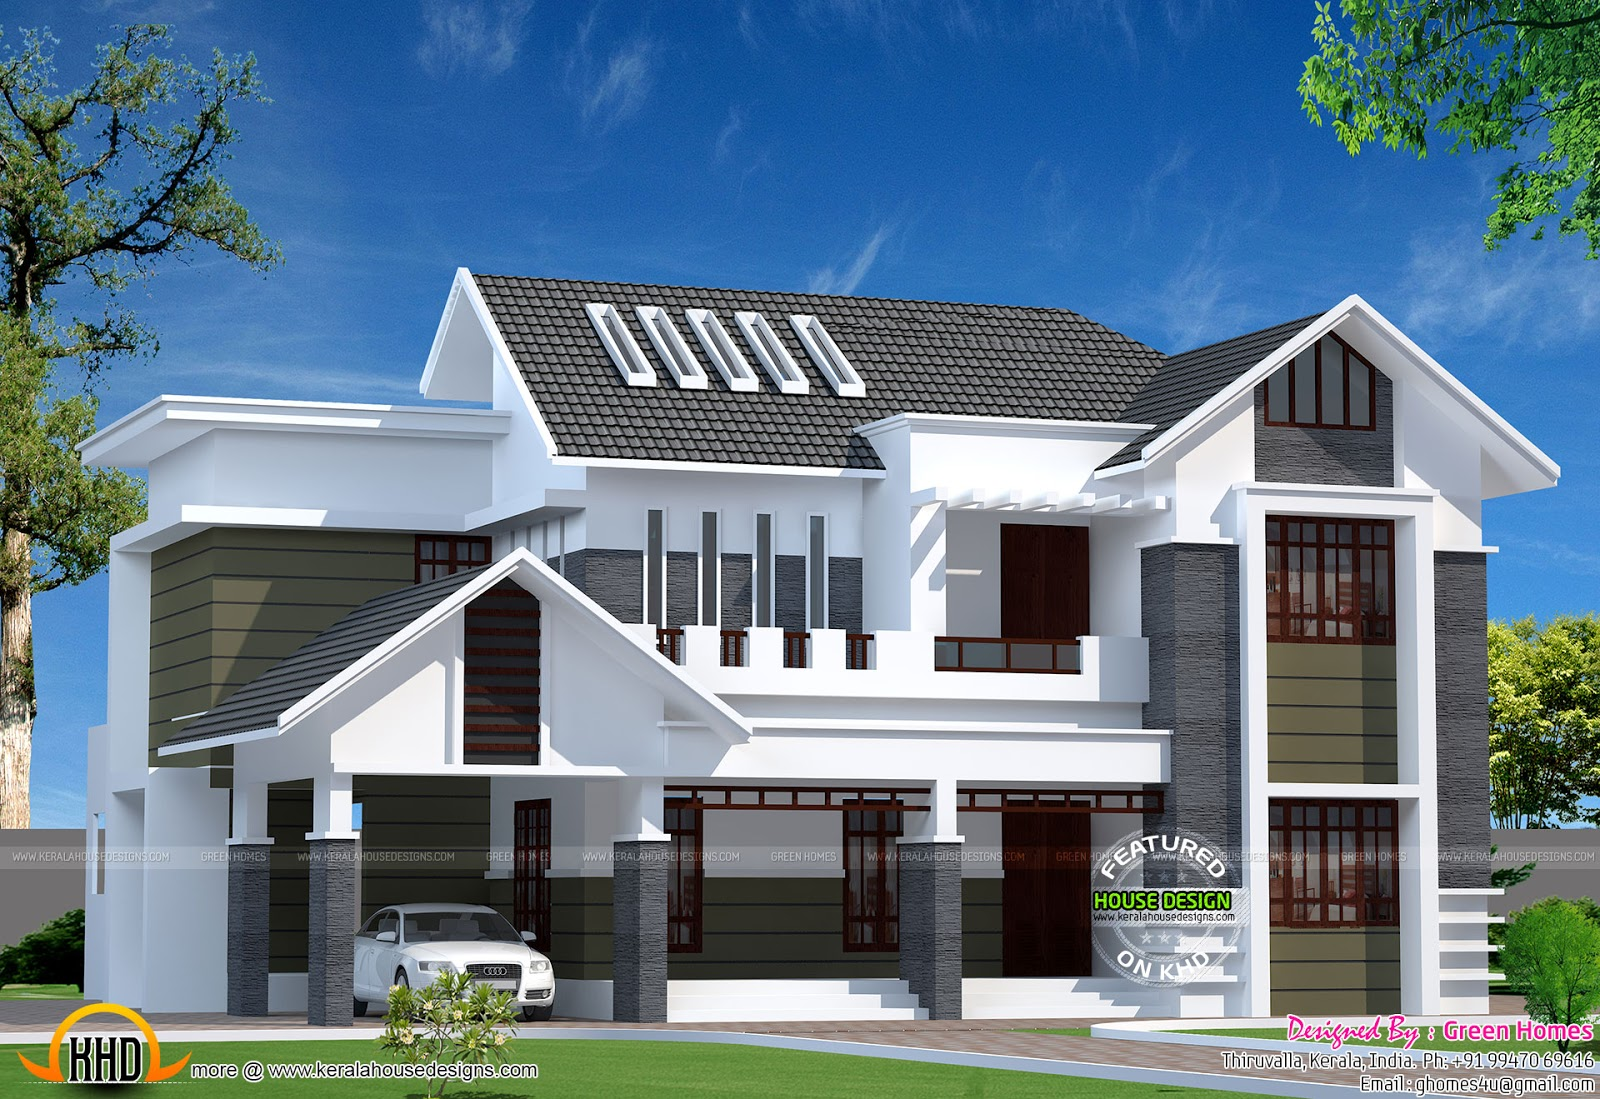 2800 sq ft modern kerala home kerala home design and for House plans with photos in kerala style